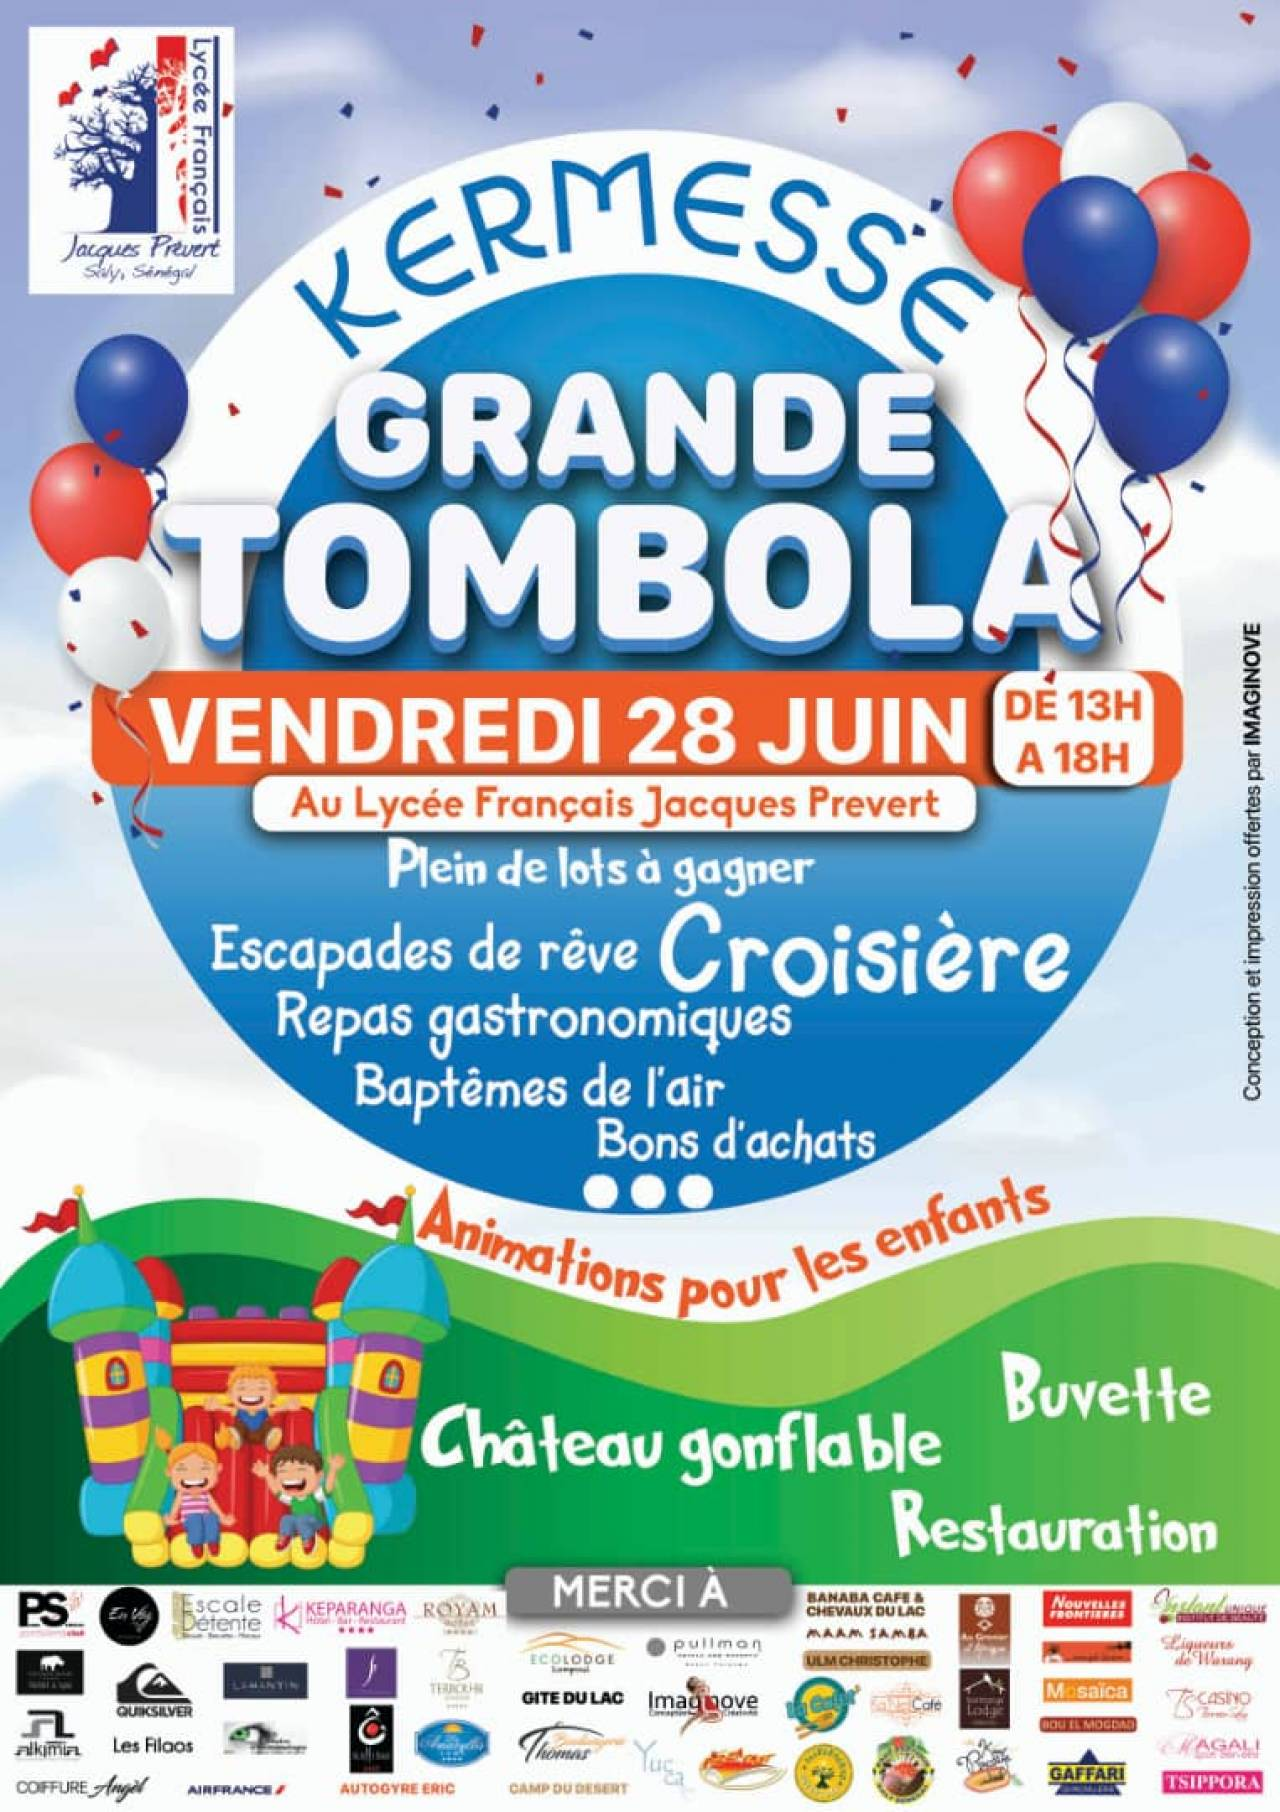 articles/June2019/affiche kermesse1.jpg